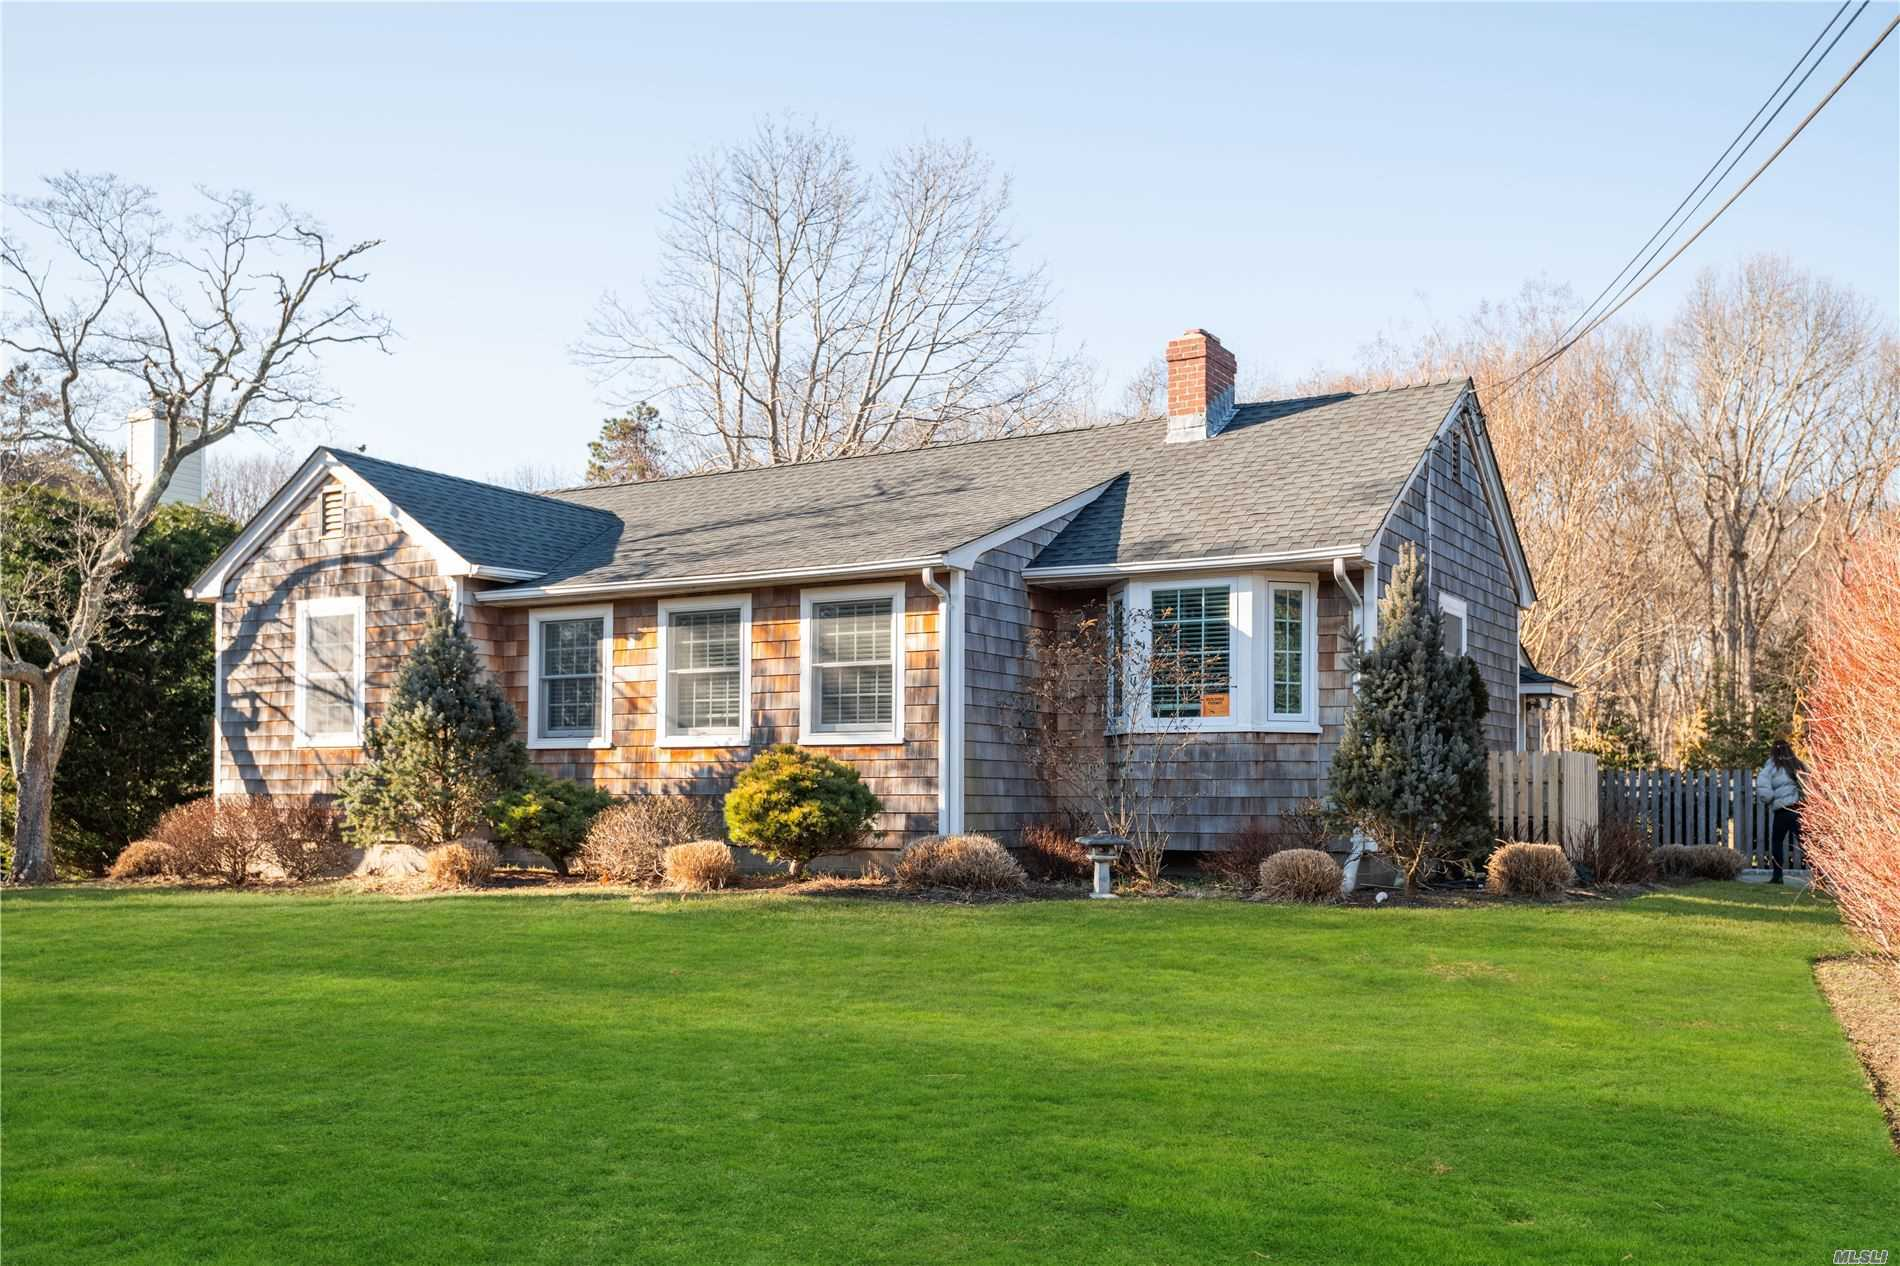 300 Knollwood Ln - Mattituck, New York